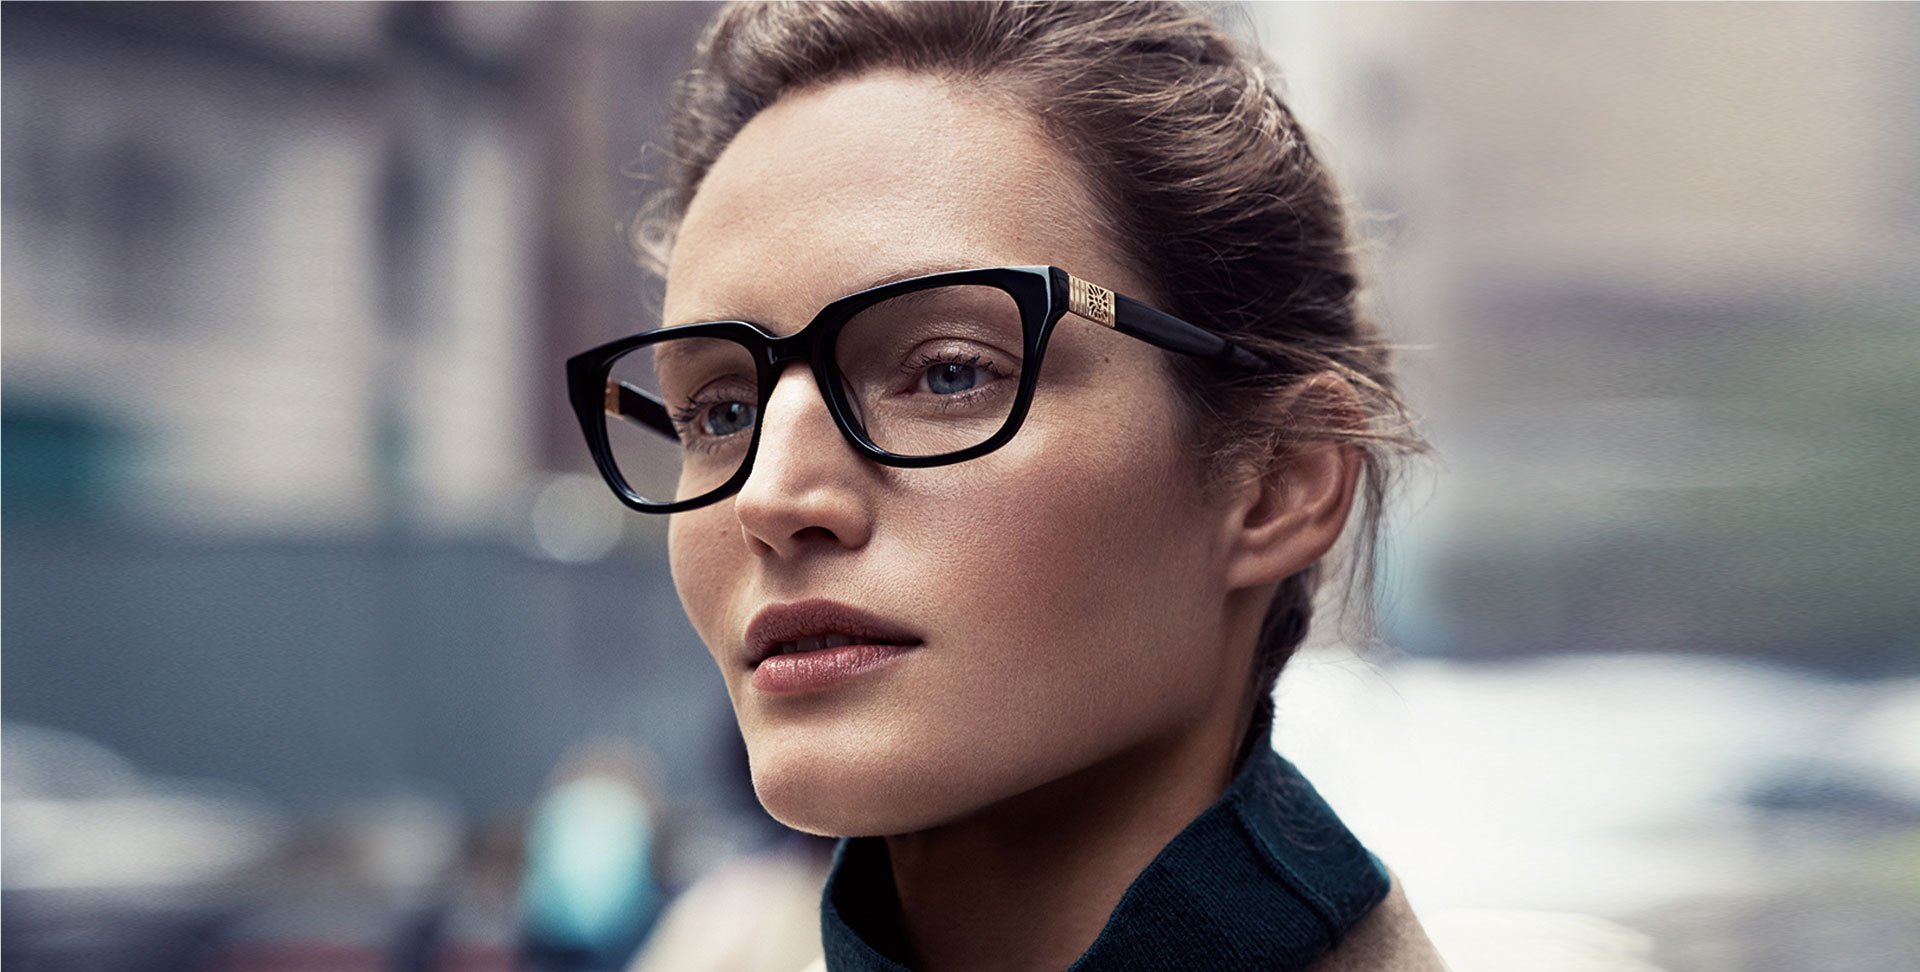 from Anne Klein in our optical. Flattering and always in demand with our petite patients.